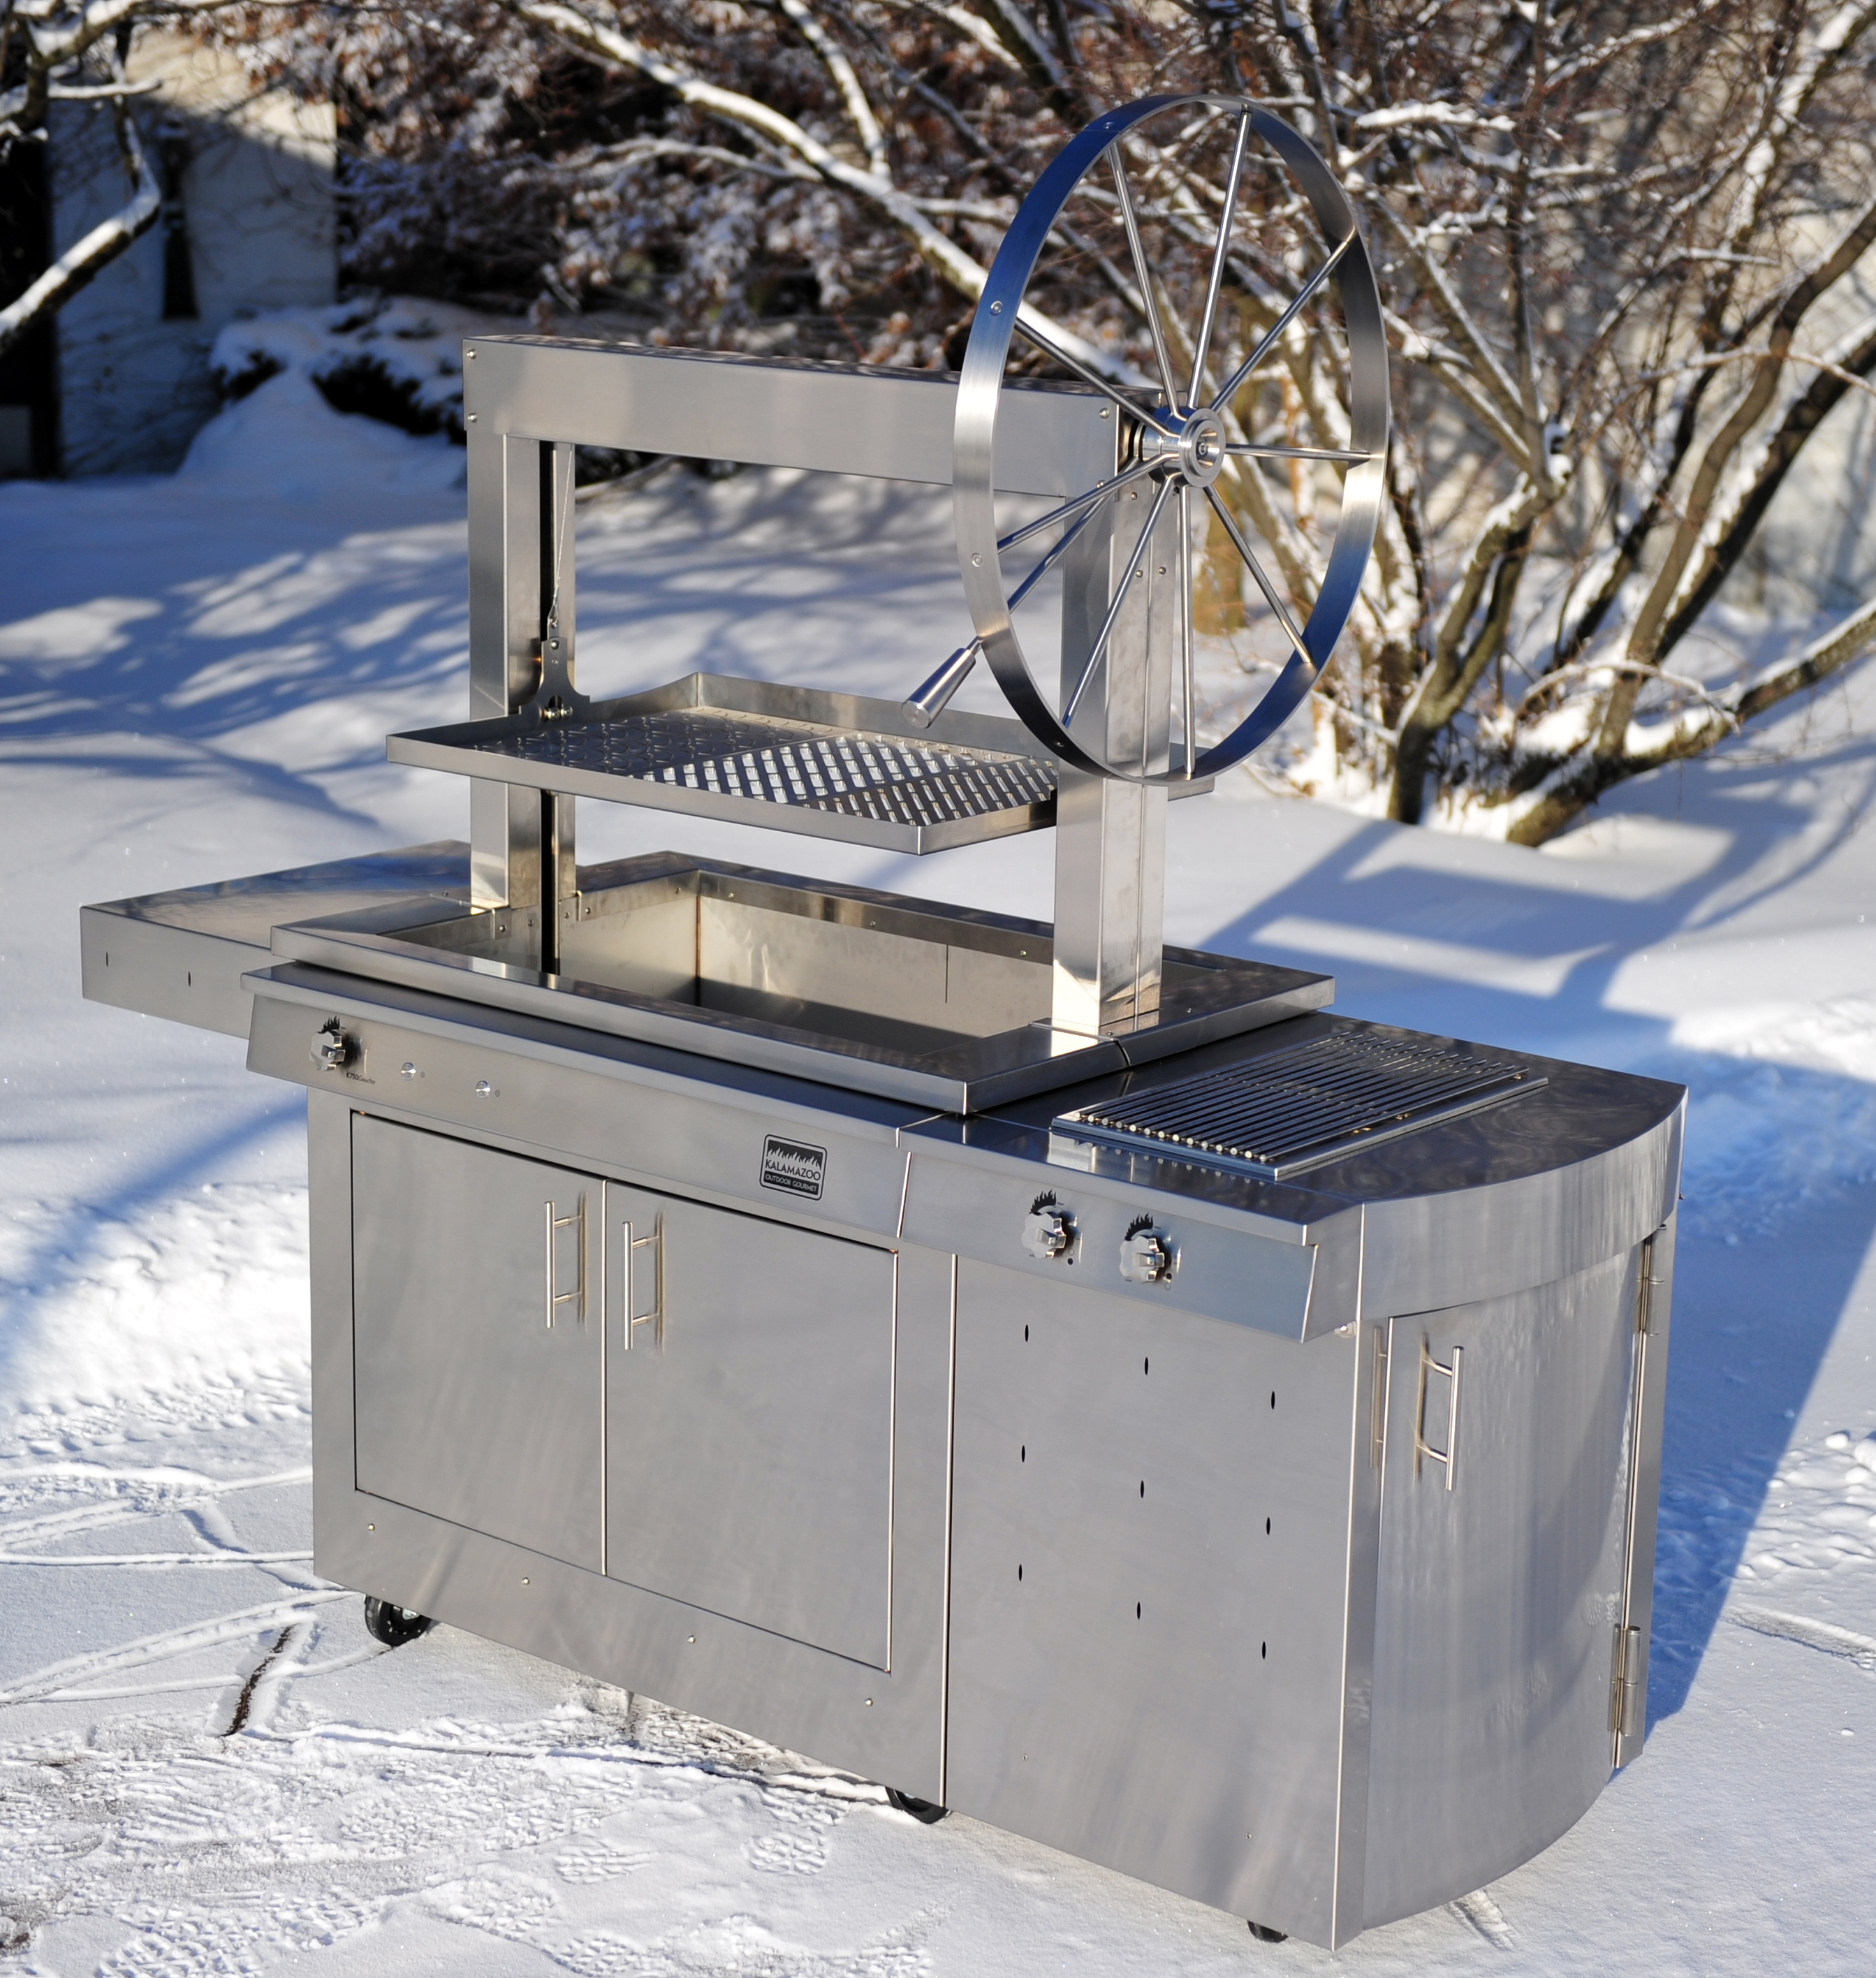 Heat up the backyard with the Kalamazoo Outdoor Gourmet Gaucho Grill.